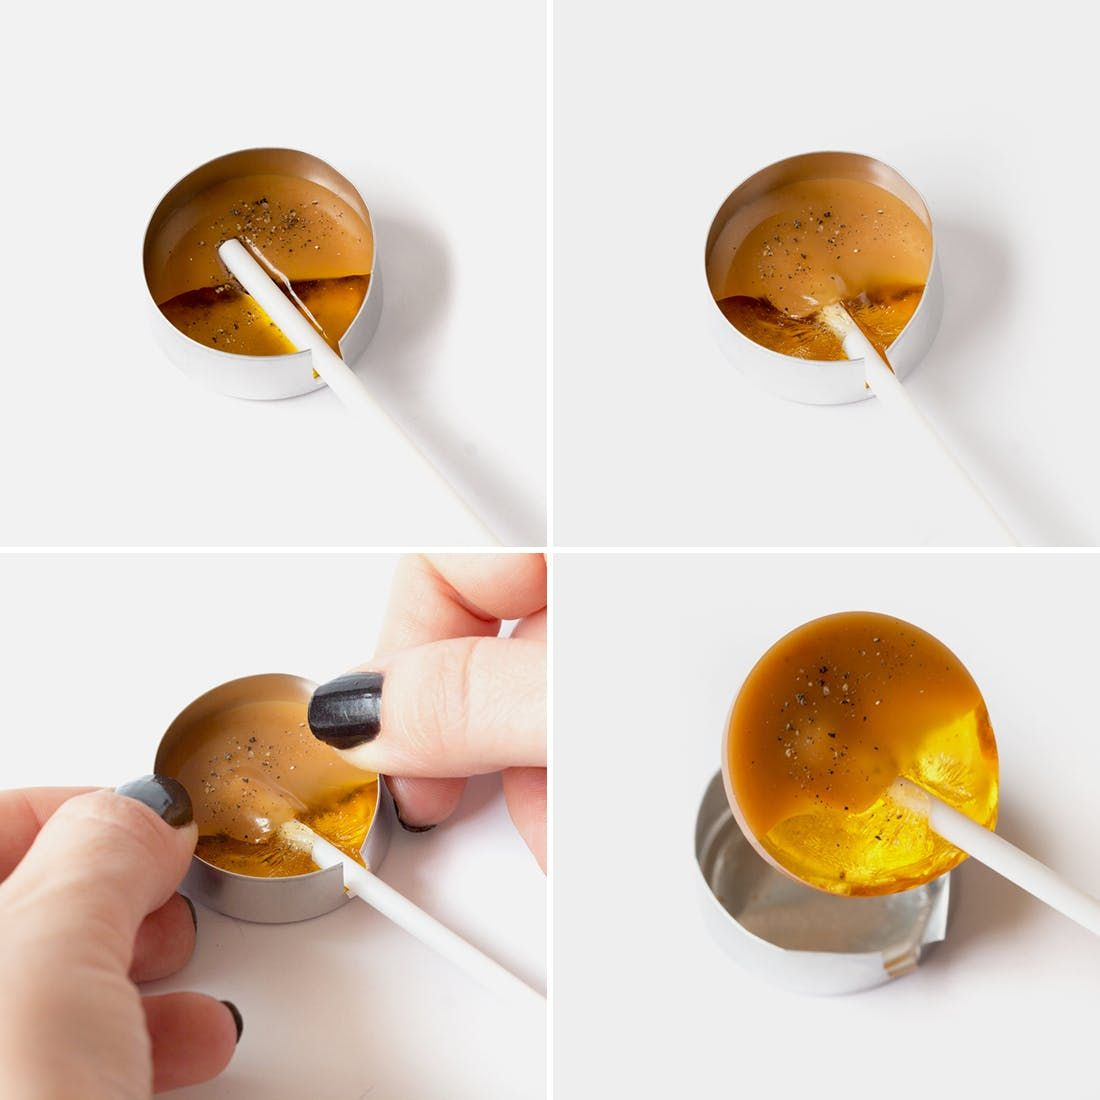 How to Make Gourmet Lollipops Without the Expensive Molds